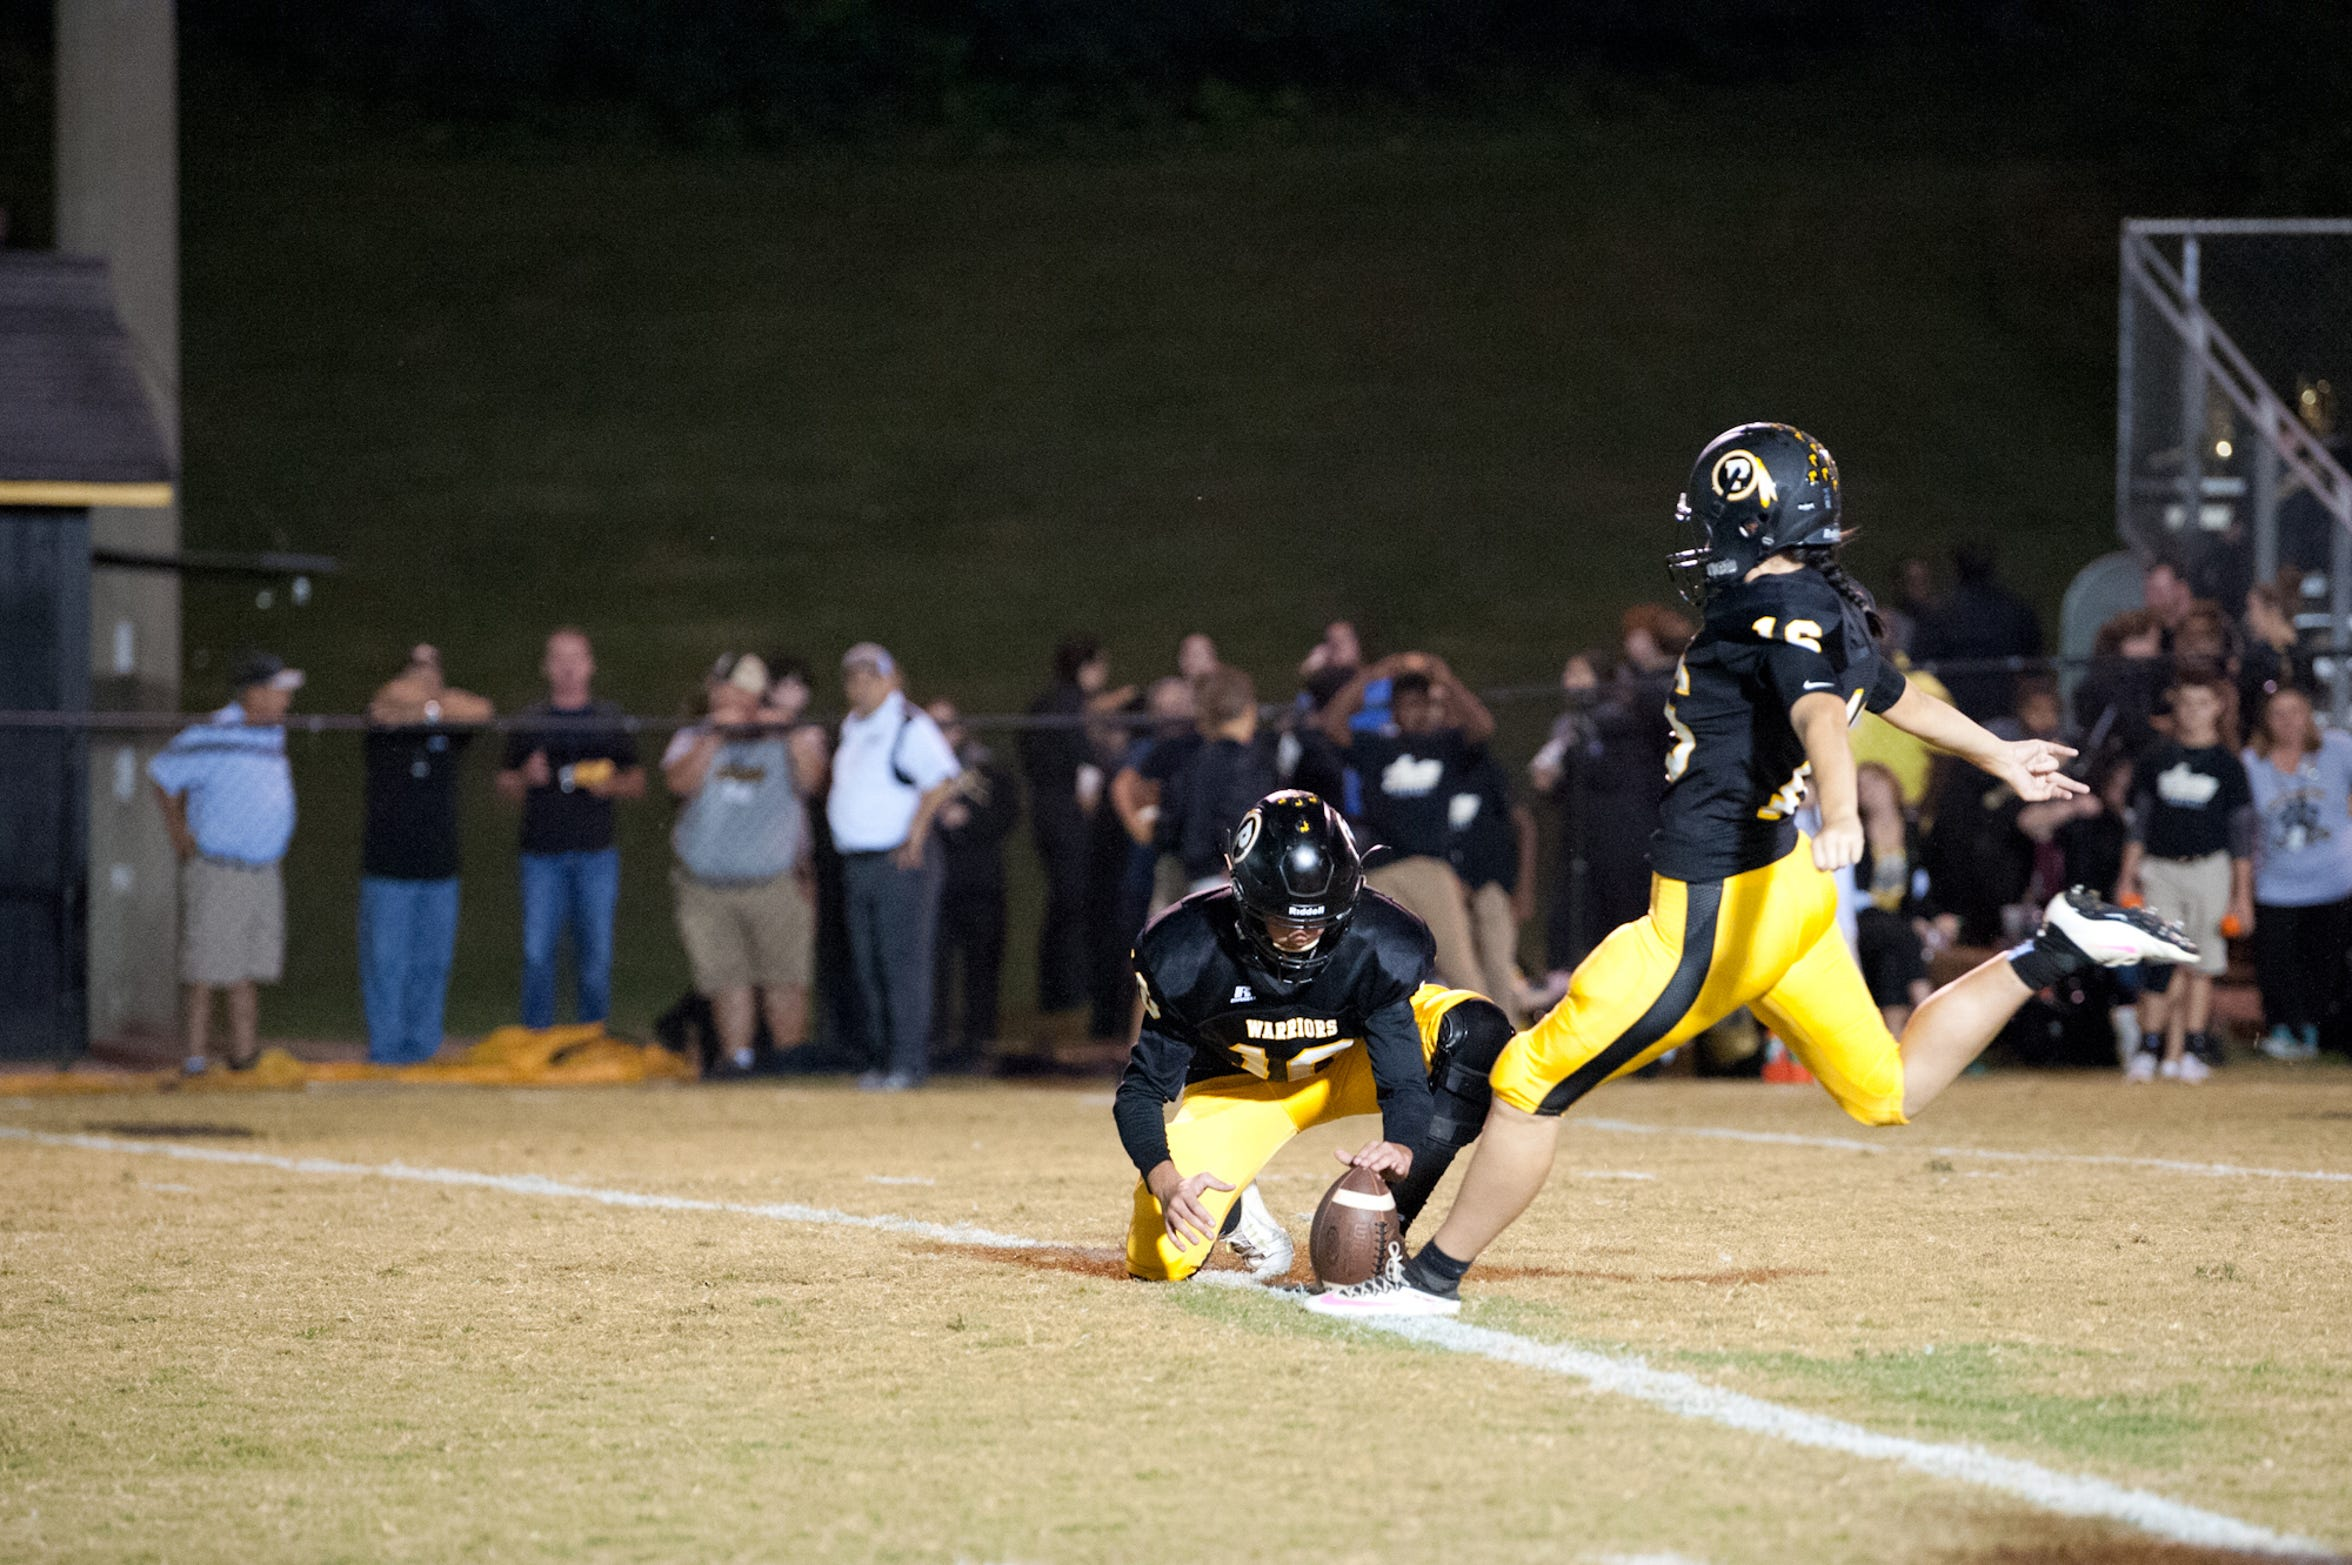 Pontotoc kicker Taylor Hughes attempts a field goal during a game against Amory High School at Pontotoc High School on Oct. 6, 2017.